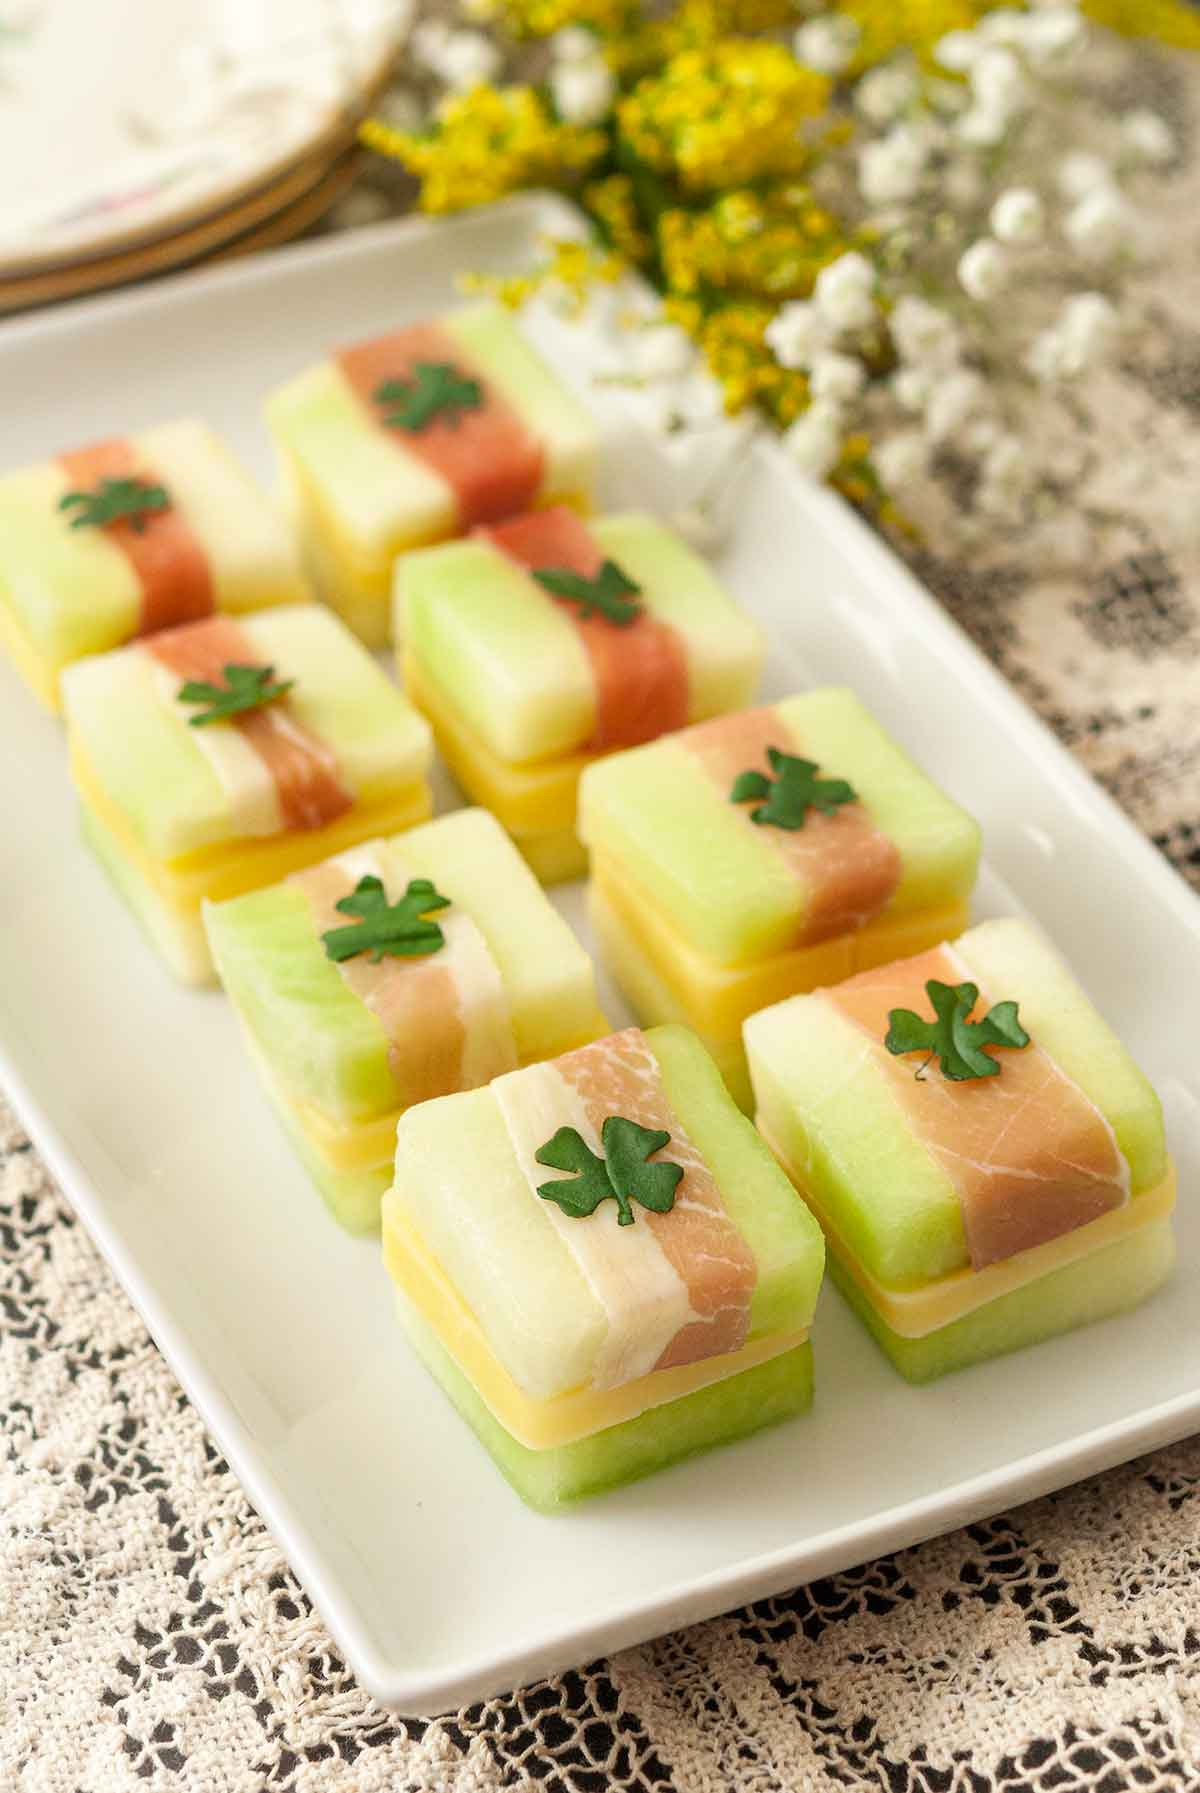 8 St. Patrick's Day melon appetizers with clovers on top, on a white plate, on a lace table cloth..